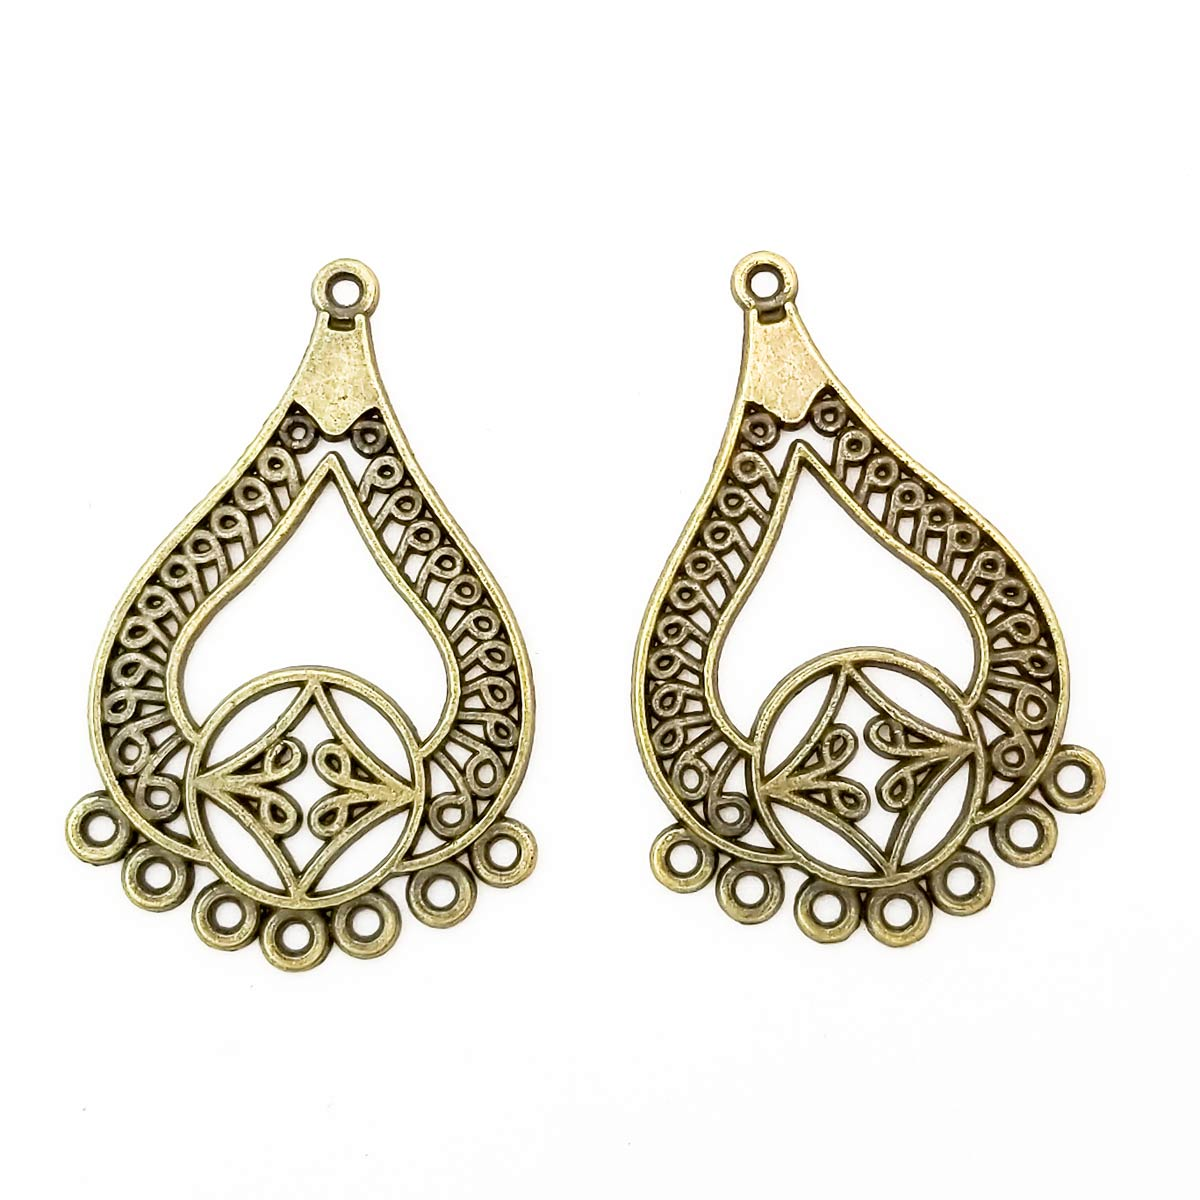 Tibetan Chandelier Earrings